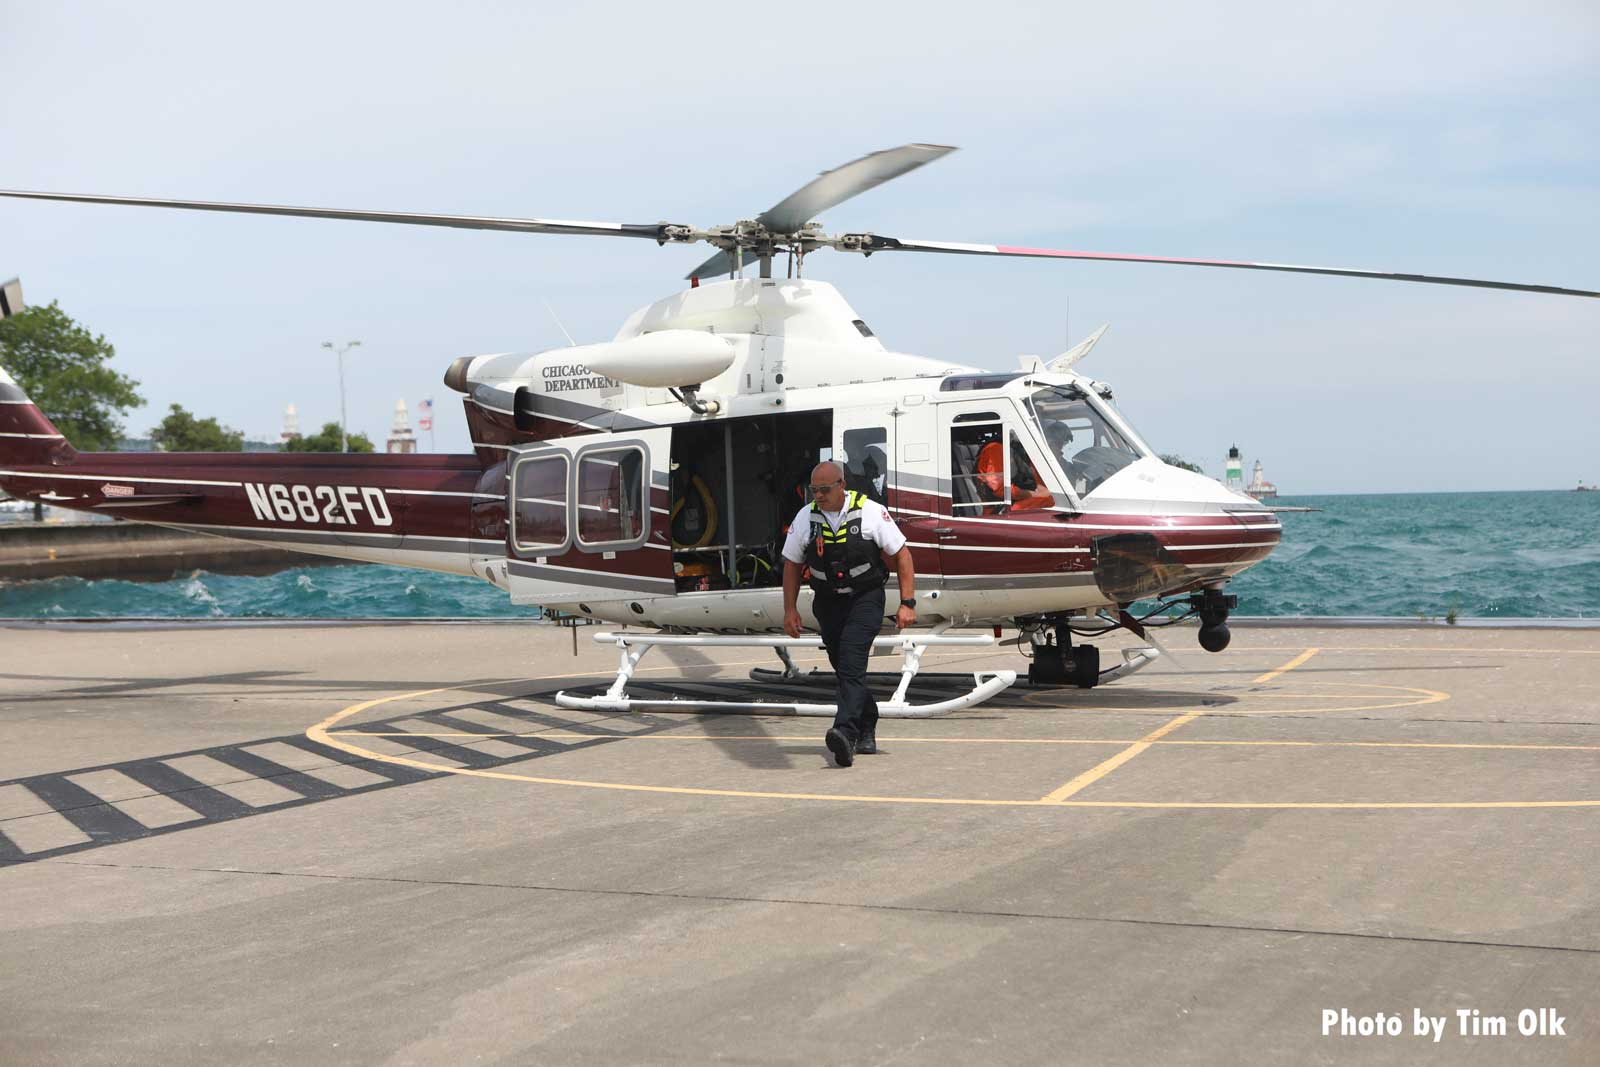 Chicago fire helicopter lands